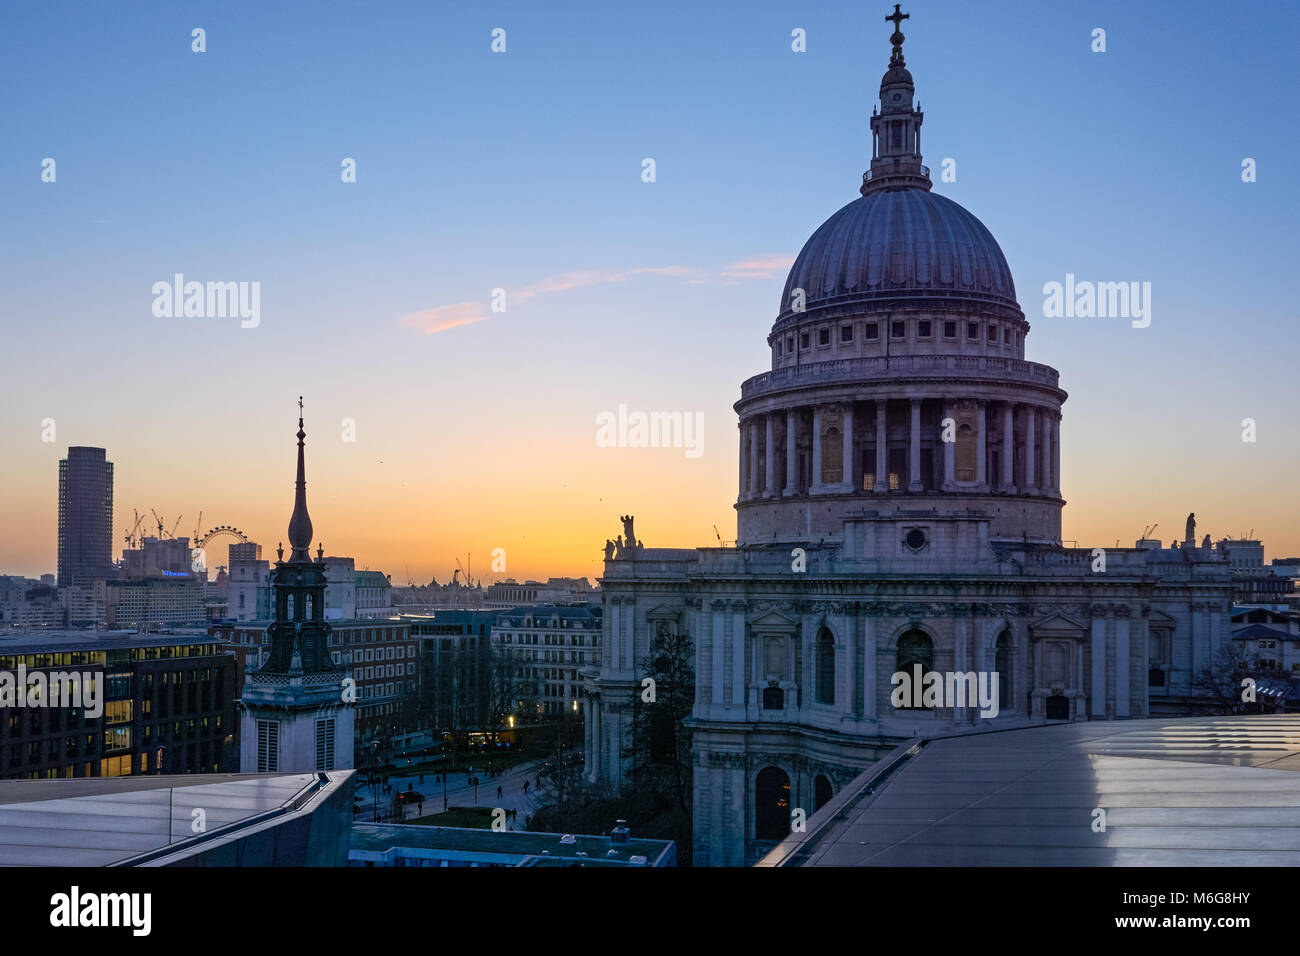 St. Paul's Cathedral seen from One New Change, London England United Kingdom UK - Stock Image